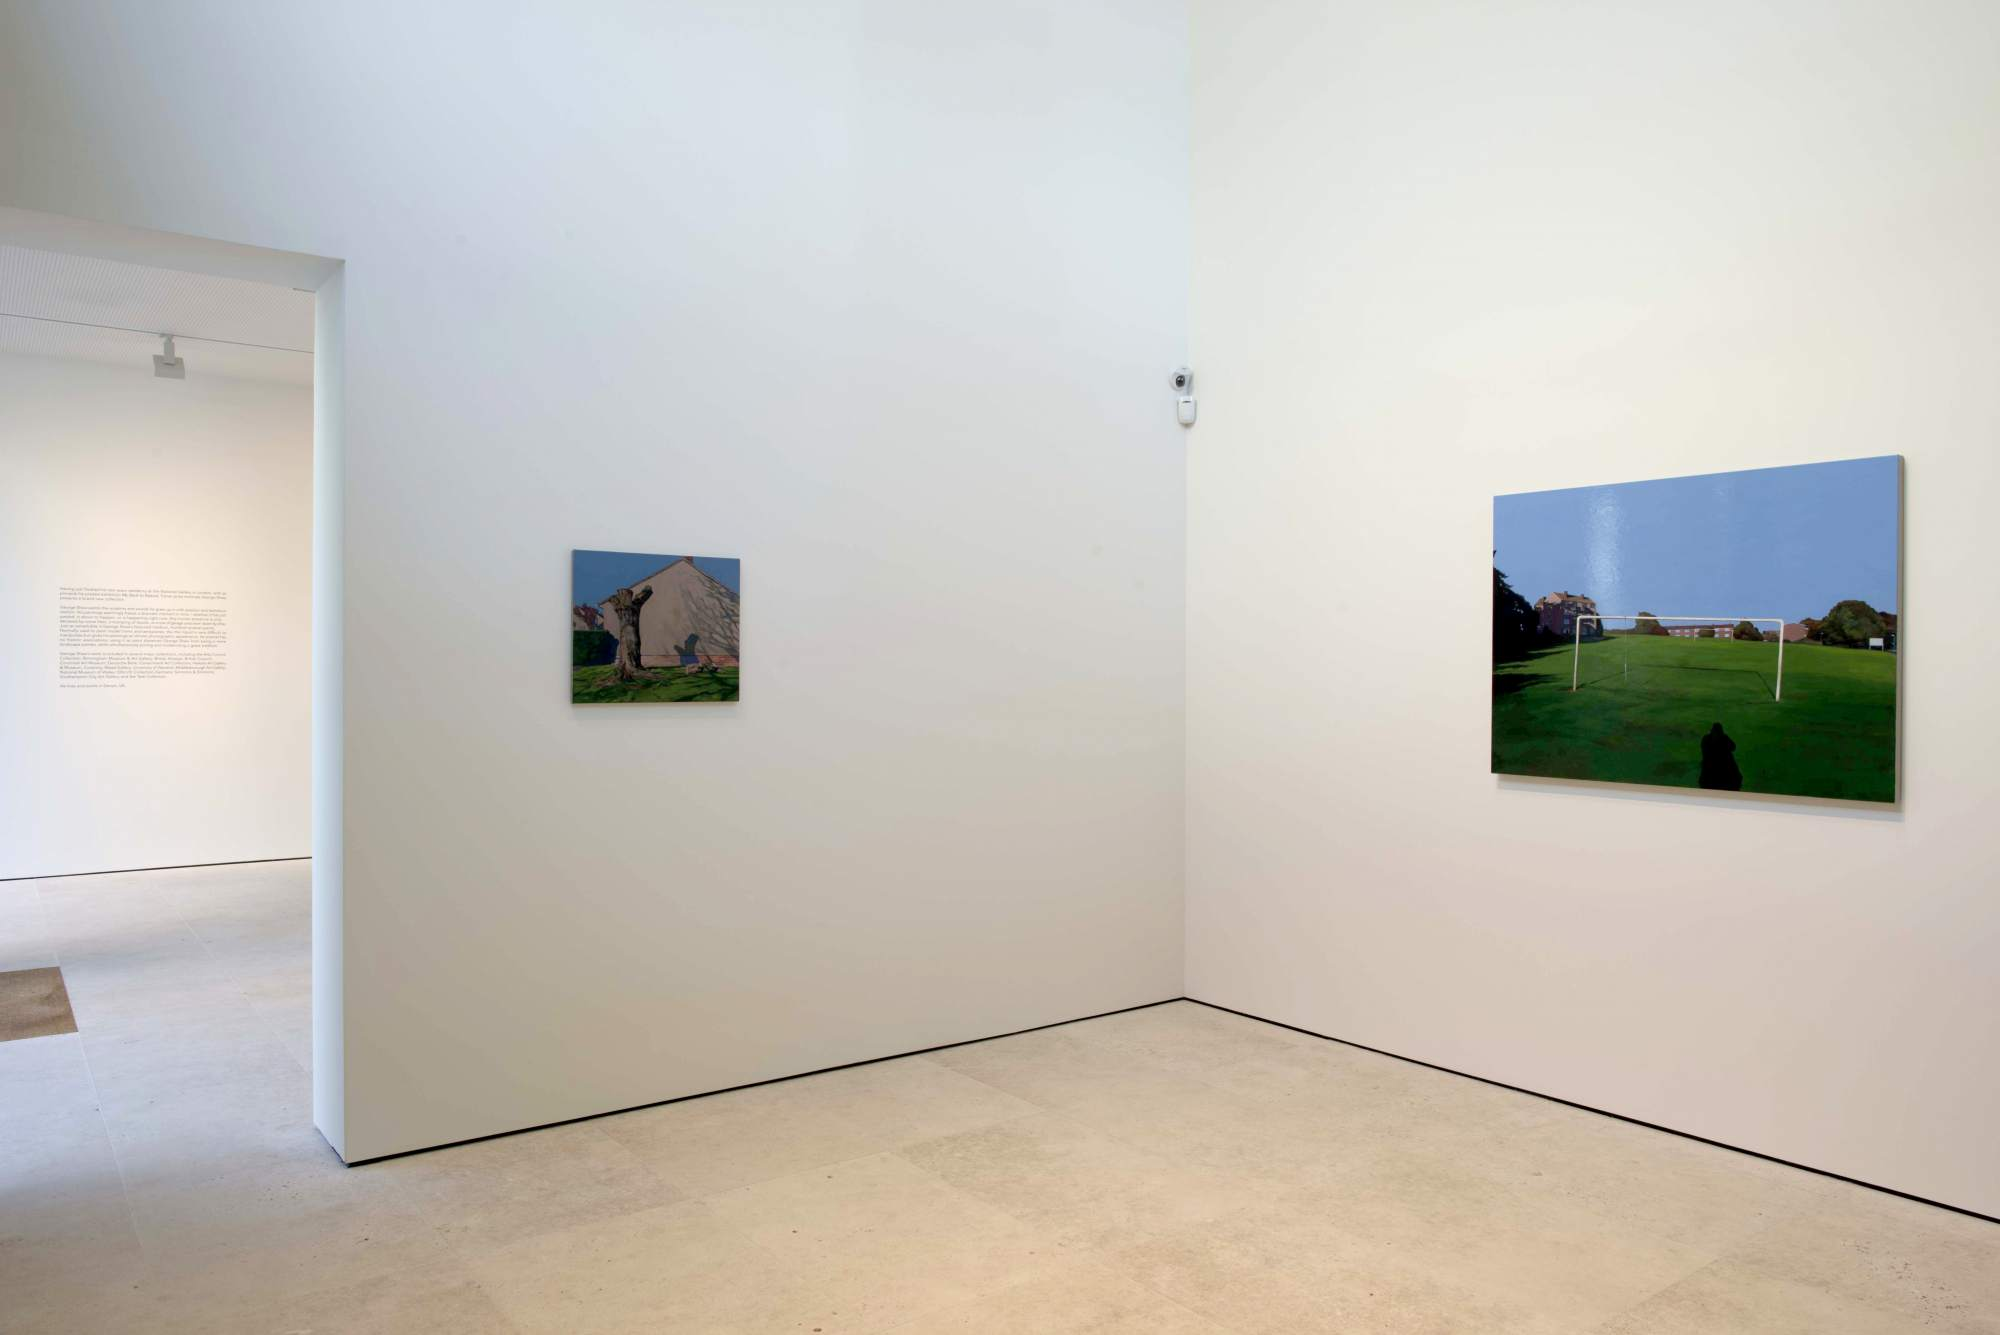 George Shaw,  The Lost of England , Galerie Maruani Mercier, vue d'exposition. Image courtesy Galerie Maruani Mercier